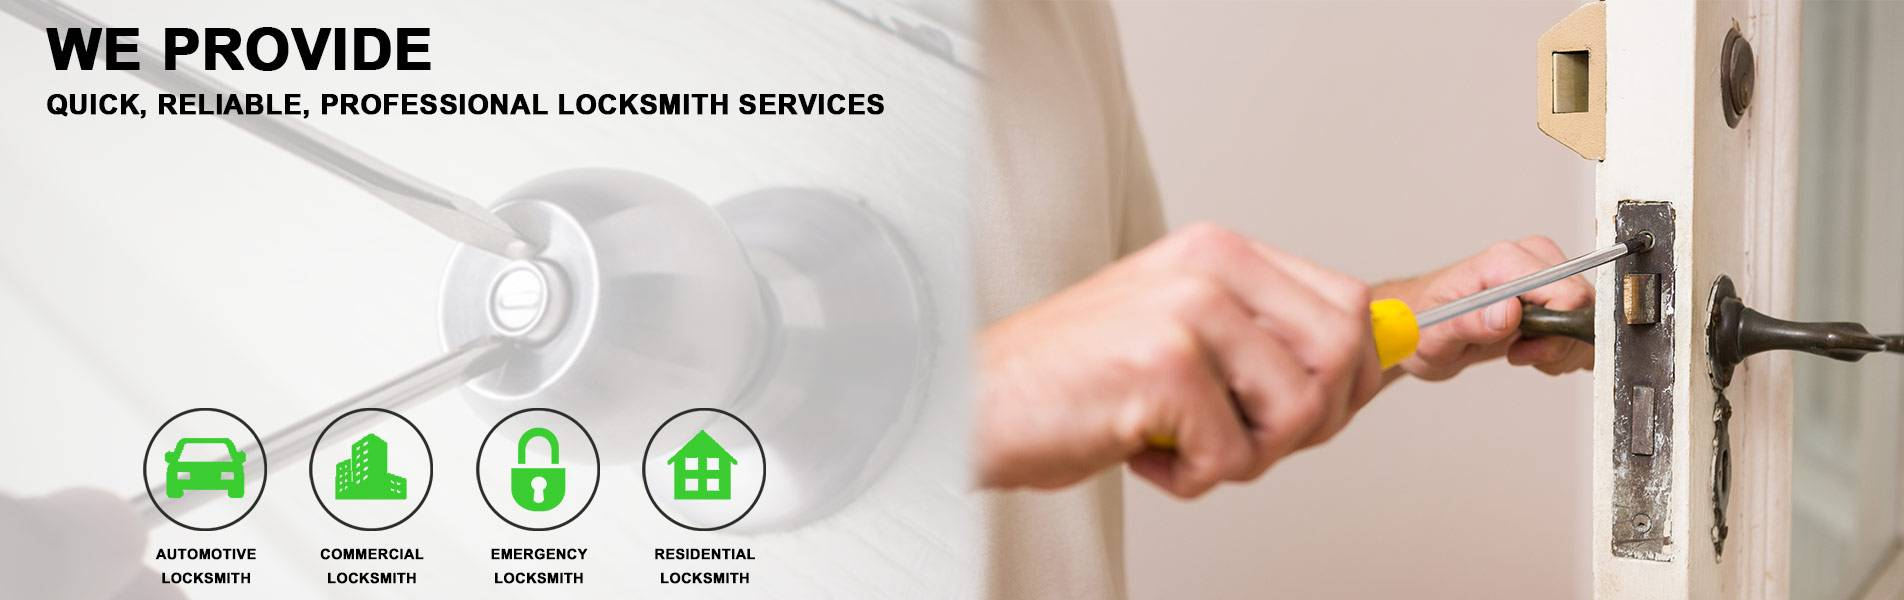 Expert Locksmith Services New York, NY 212-547-9795